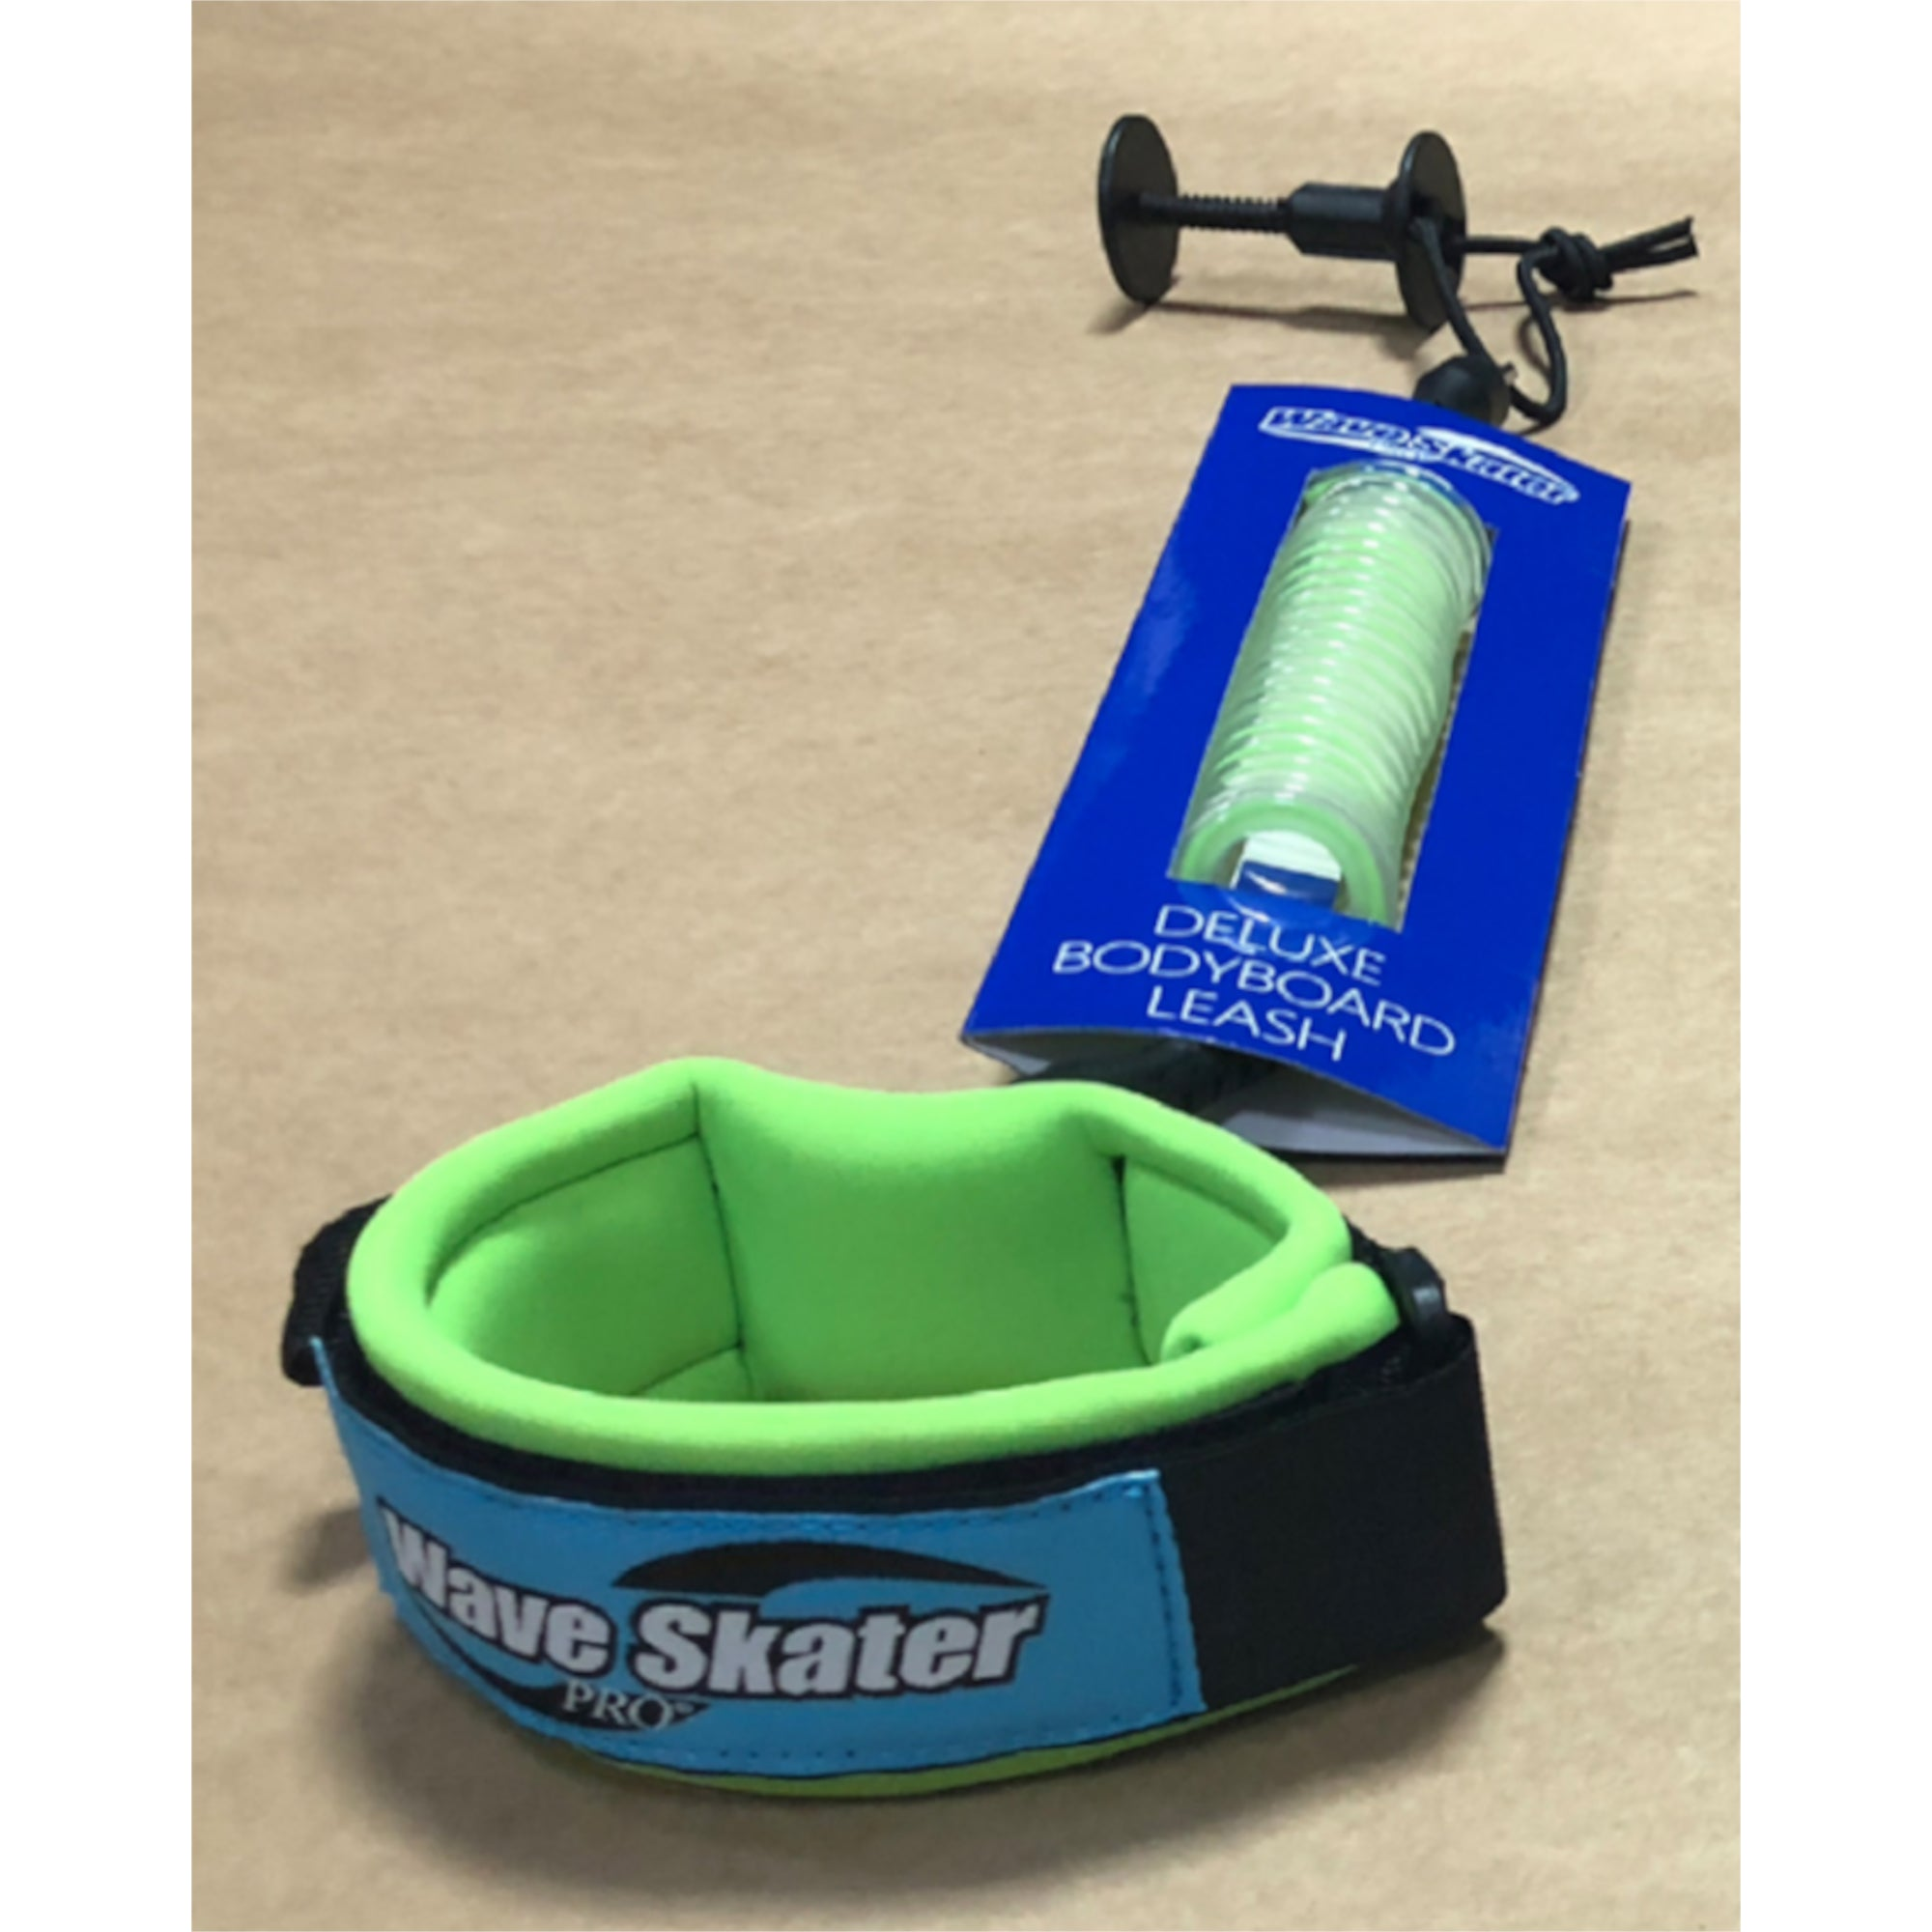 Wave Skater Pro Deluxe Bodyboard Leash